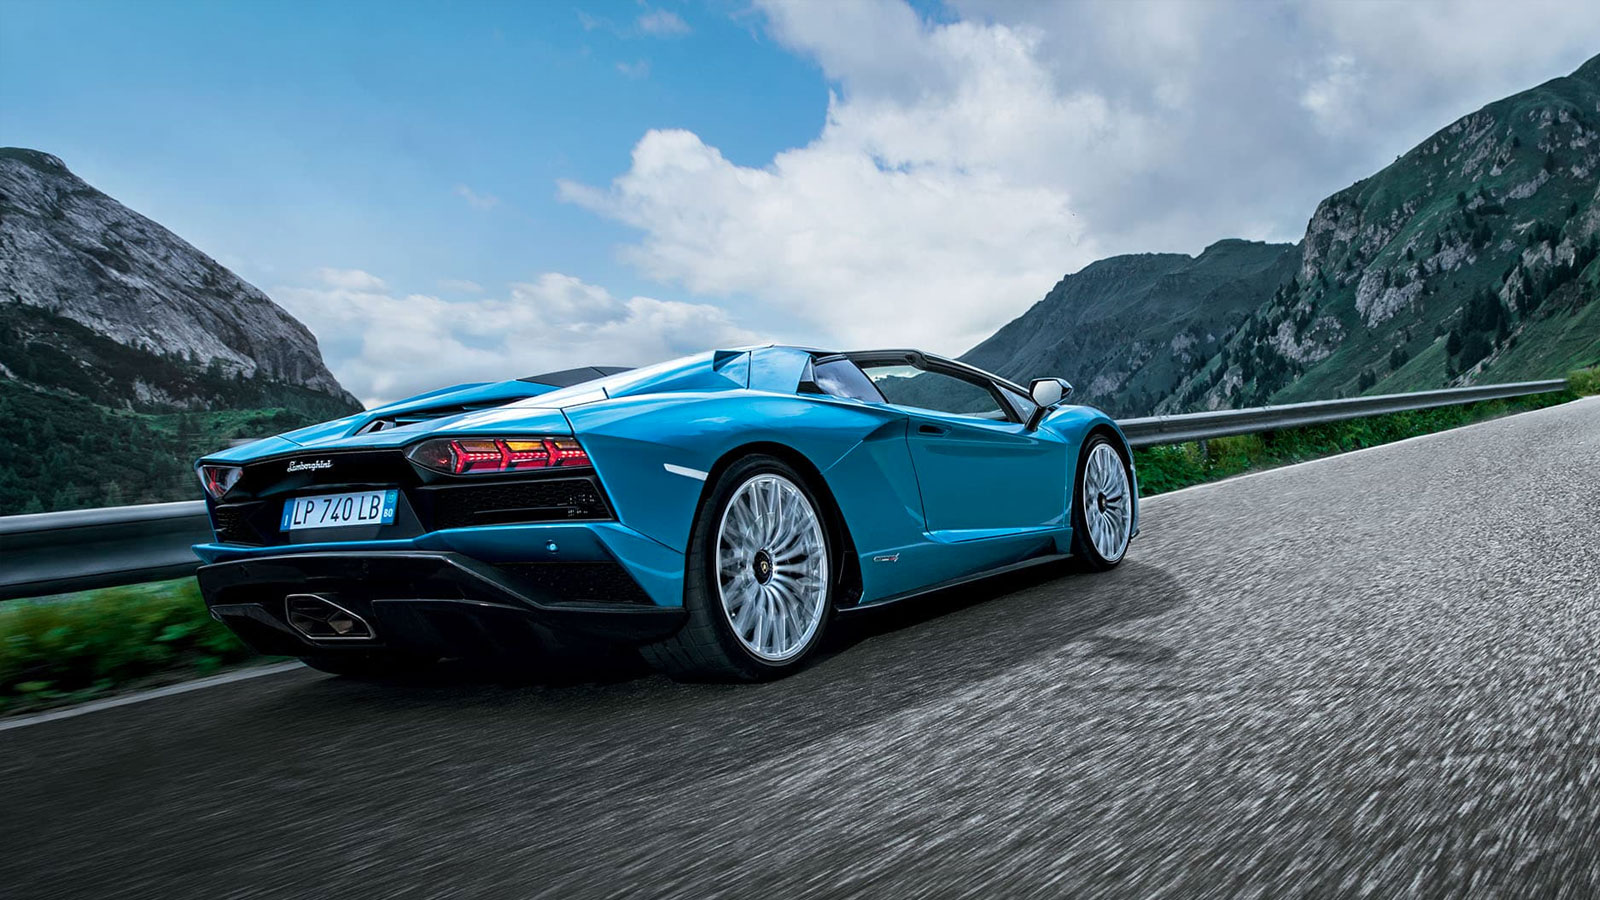 Lamborghini Aventador S Roadster - The Open Top Icon image 8